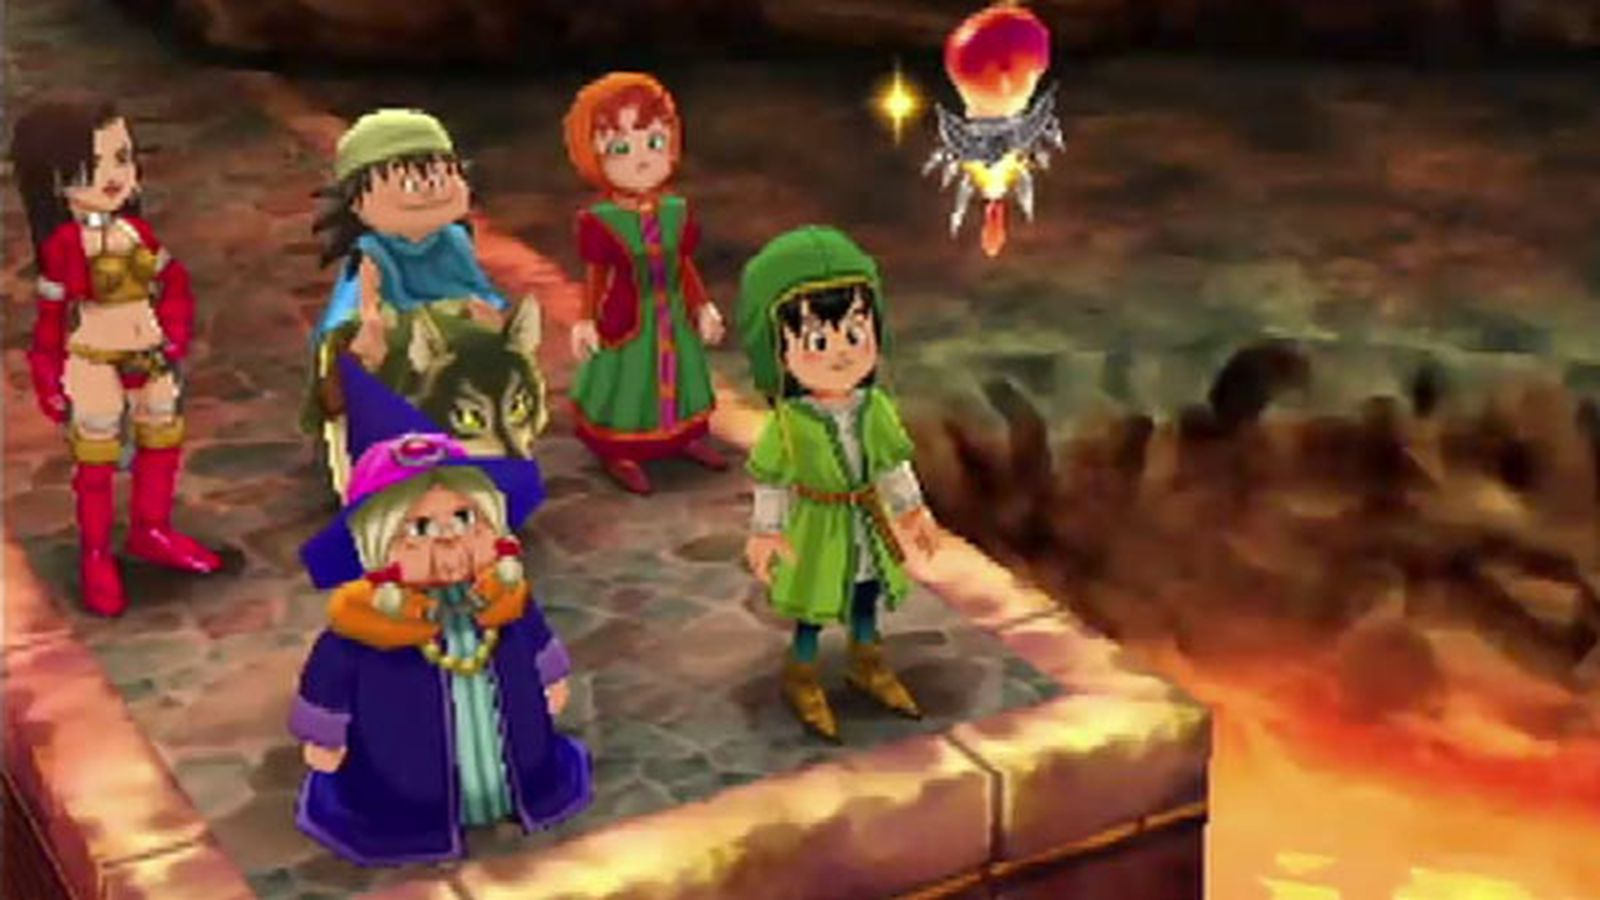 Dragon Quest 7 3ds Fliegender Teppich Dragon Quest 7 3ds Remake May Not Be Worth The Cost For